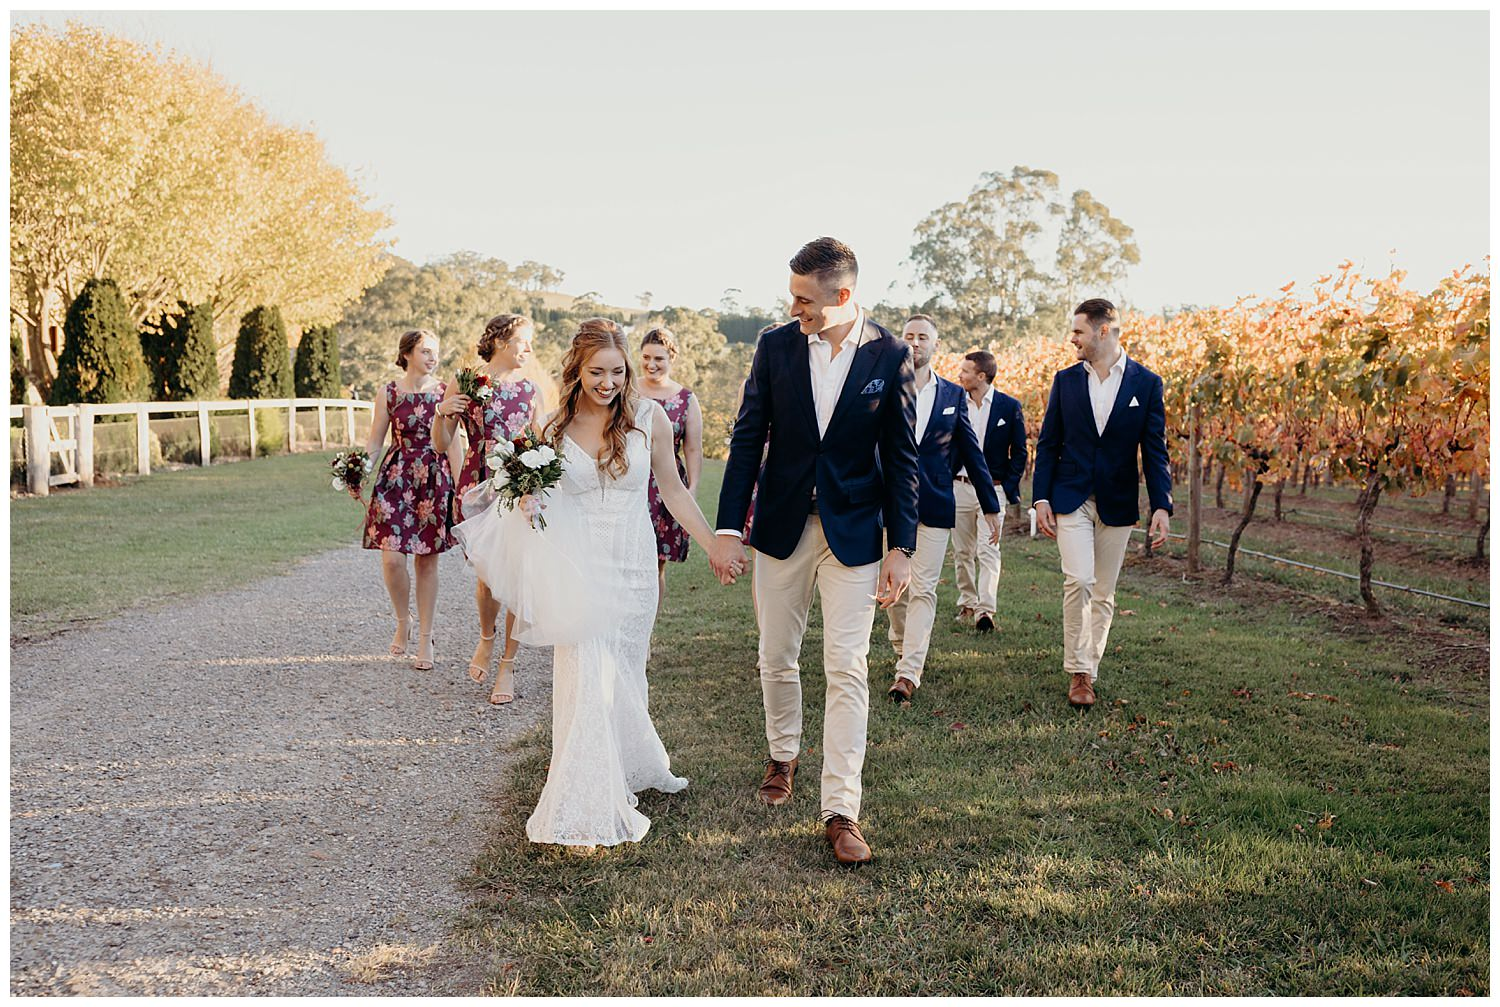 Bowral Southern Highlands Autumn Wedding - Bridal party candid sunset photo